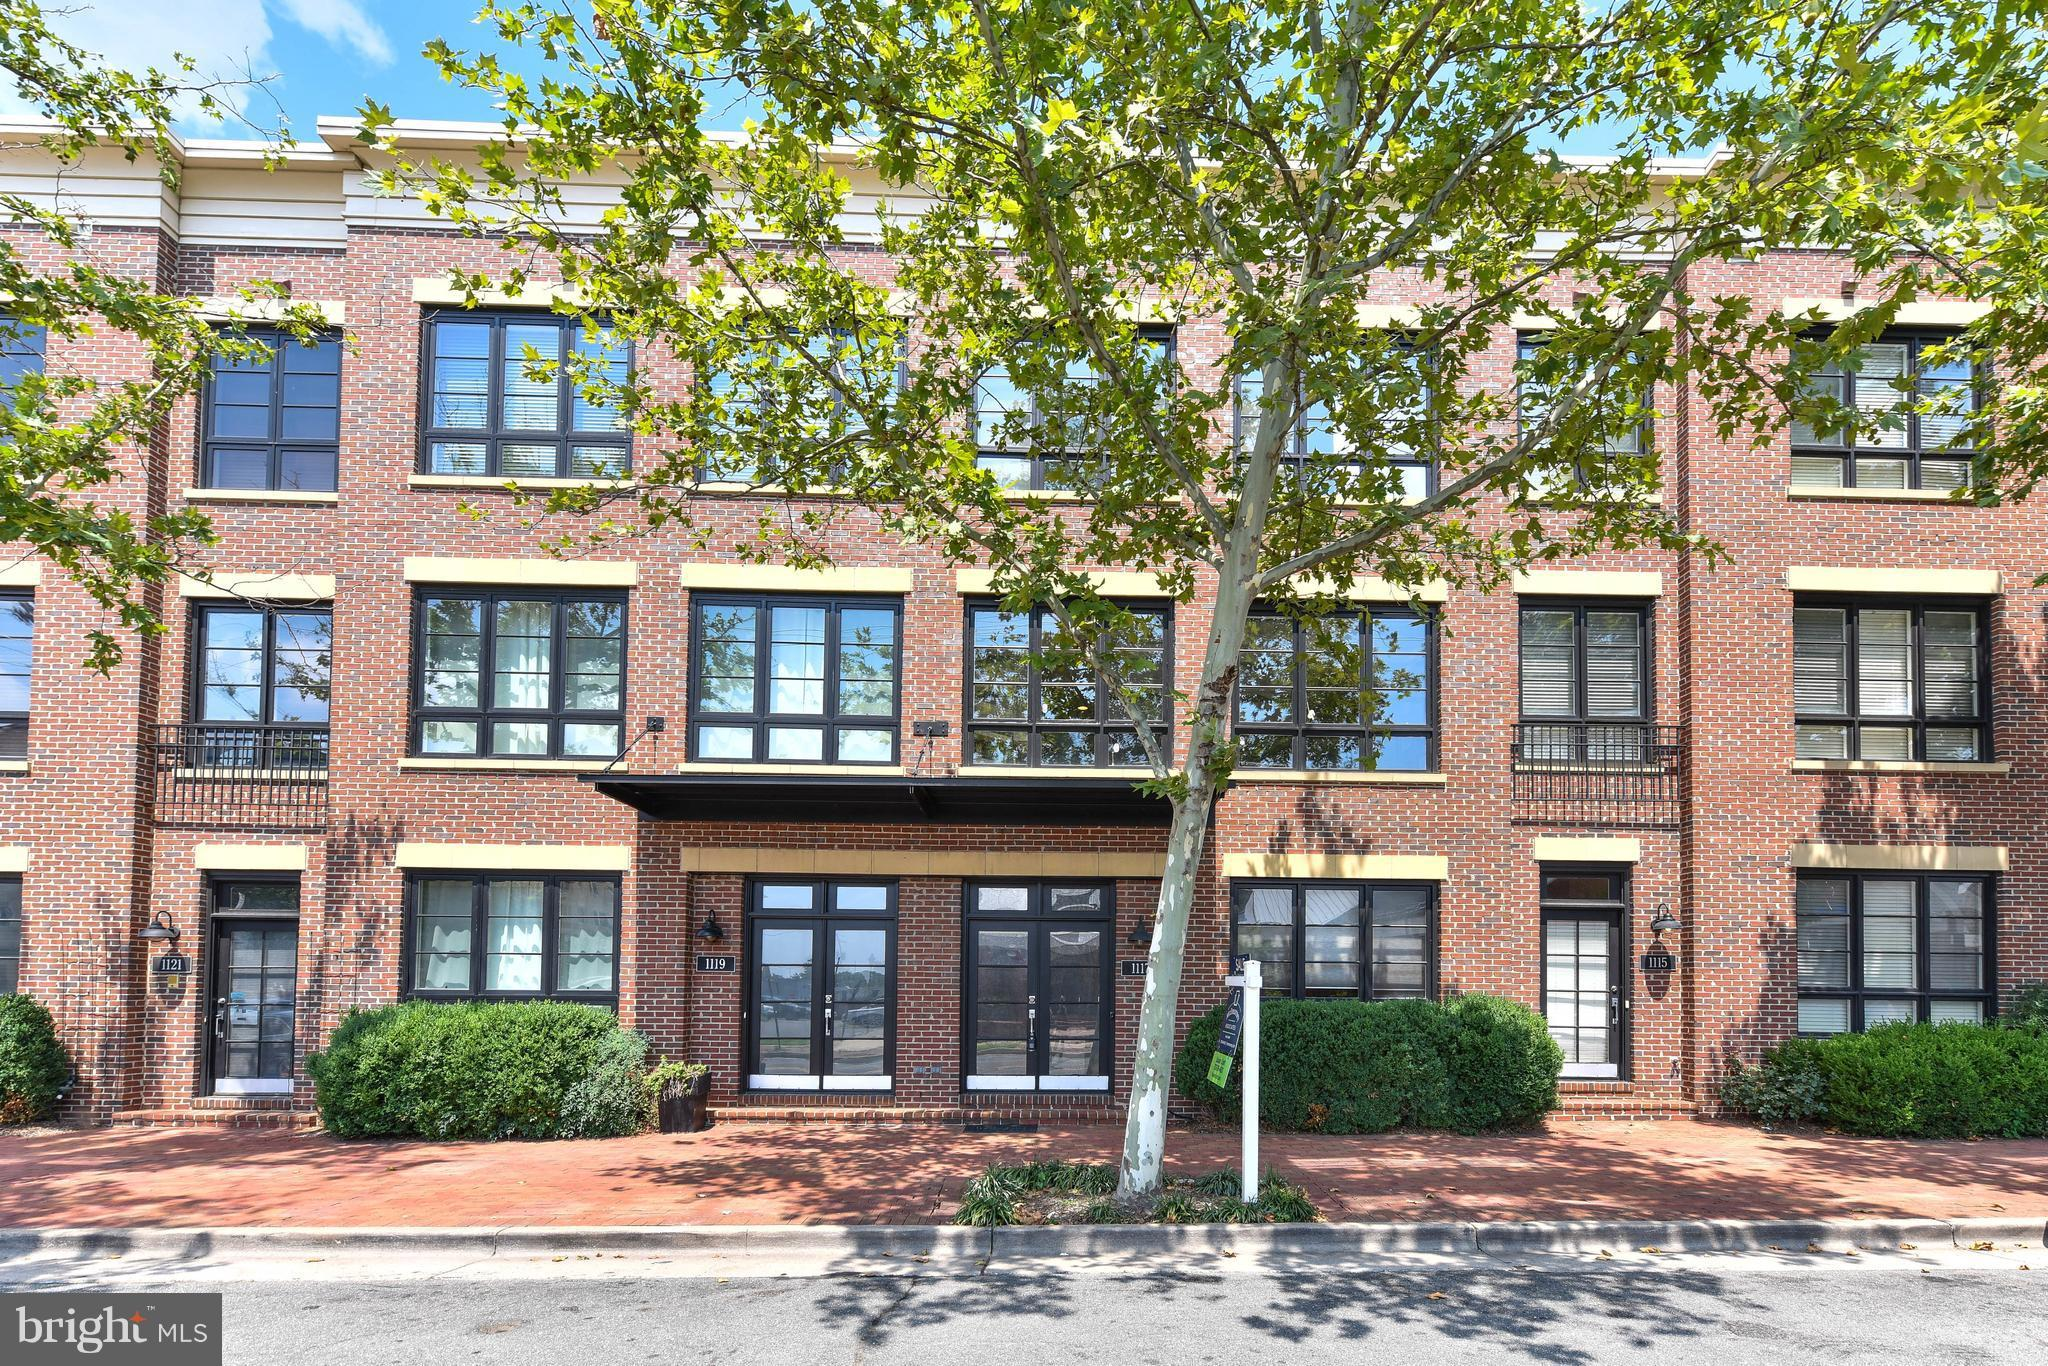 Urban Loft w/2,720 sf of fabulous living space and ROOF TOP DECK w/expansive Southern views. THREE BEDROOM SUITES PLUS DEN and TWO CAR GARAGE. Open floor plan Kitchen/Dining/Living, great for entertaining! Hardwood floors, 9' ceilings, fireplace, zoned HVAC. Steps to Braddock Metro.